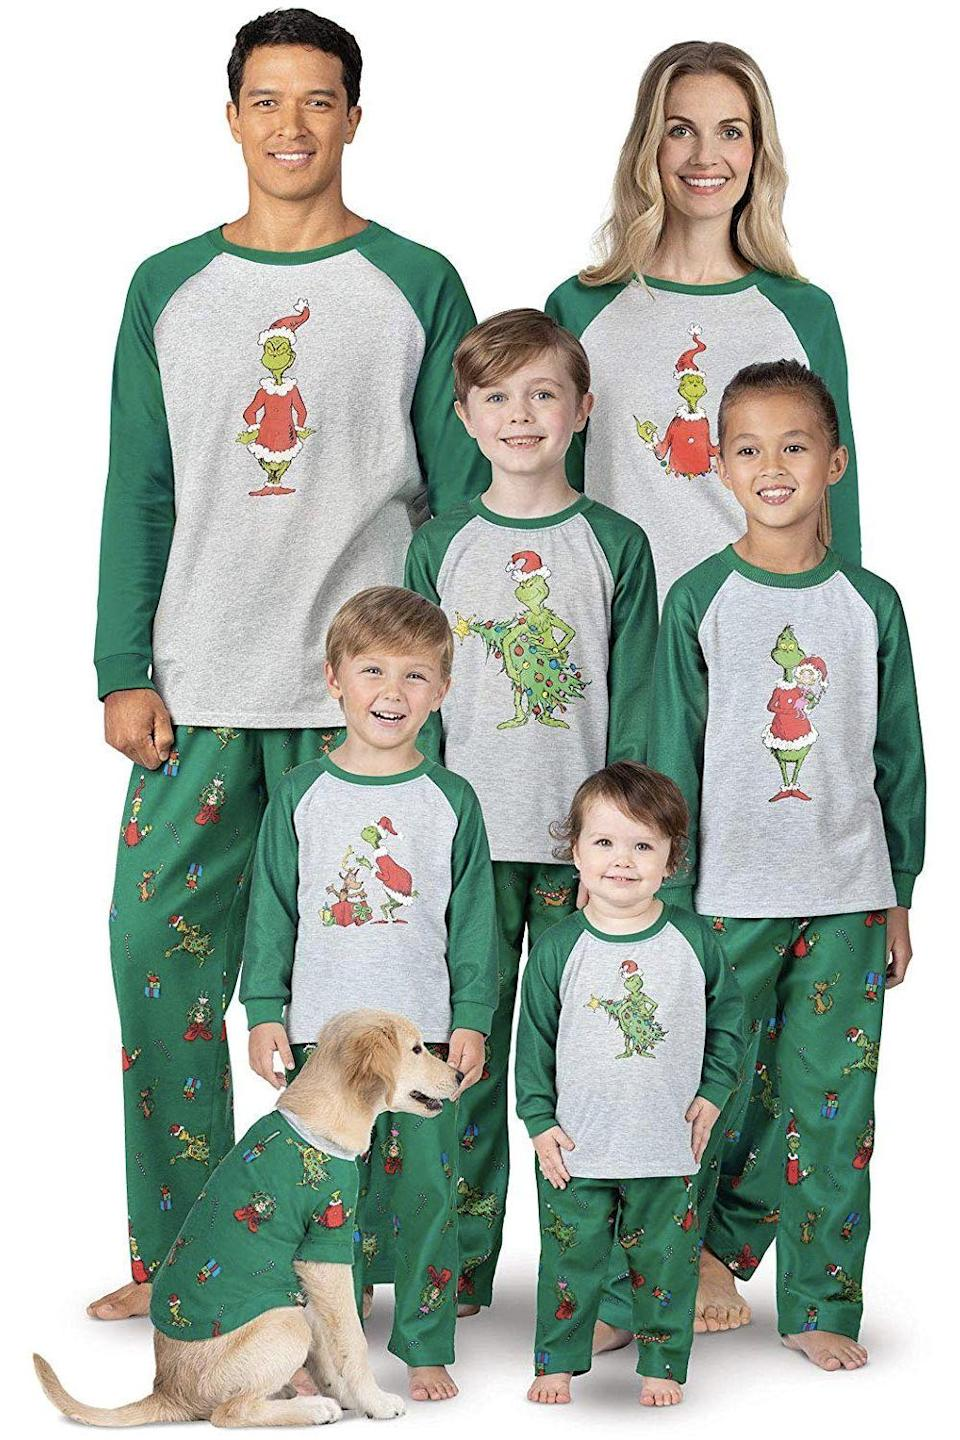 """<p><strong>PajamasGram</strong></p><p>Starting from $21</p><p><a href=""""http://www.amazon.com/dp/B07BF83TYM/?tag=syn-yahoo-20&ascsubtag=%5Bartid%7C10055.g.4946%5Bsrc%7Cyahoo-us"""" rel=""""nofollow noopener"""" target=""""_blank"""" data-ylk=""""slk:Shop Now"""" class=""""link rapid-noclick-resp"""">Shop Now</a></p><p>Even the most reluctant pajama-wearer will give in when they see the <a href=""""https://www.amazon.com/How-Grinch-Stole-Christmas-Ultimate/dp/B07HSP85S6?tag=syn-yahoo-20&ascsubtag=%5Bartid%7C10055.g.4946%5Bsrc%7Cyahoo-us"""" rel=""""nofollow noopener"""" target=""""_blank"""" data-ylk=""""slk:Grinch"""" class=""""link rapid-noclick-resp"""">Grinch</a>-inspired pattern on these PJ pants.</p>"""